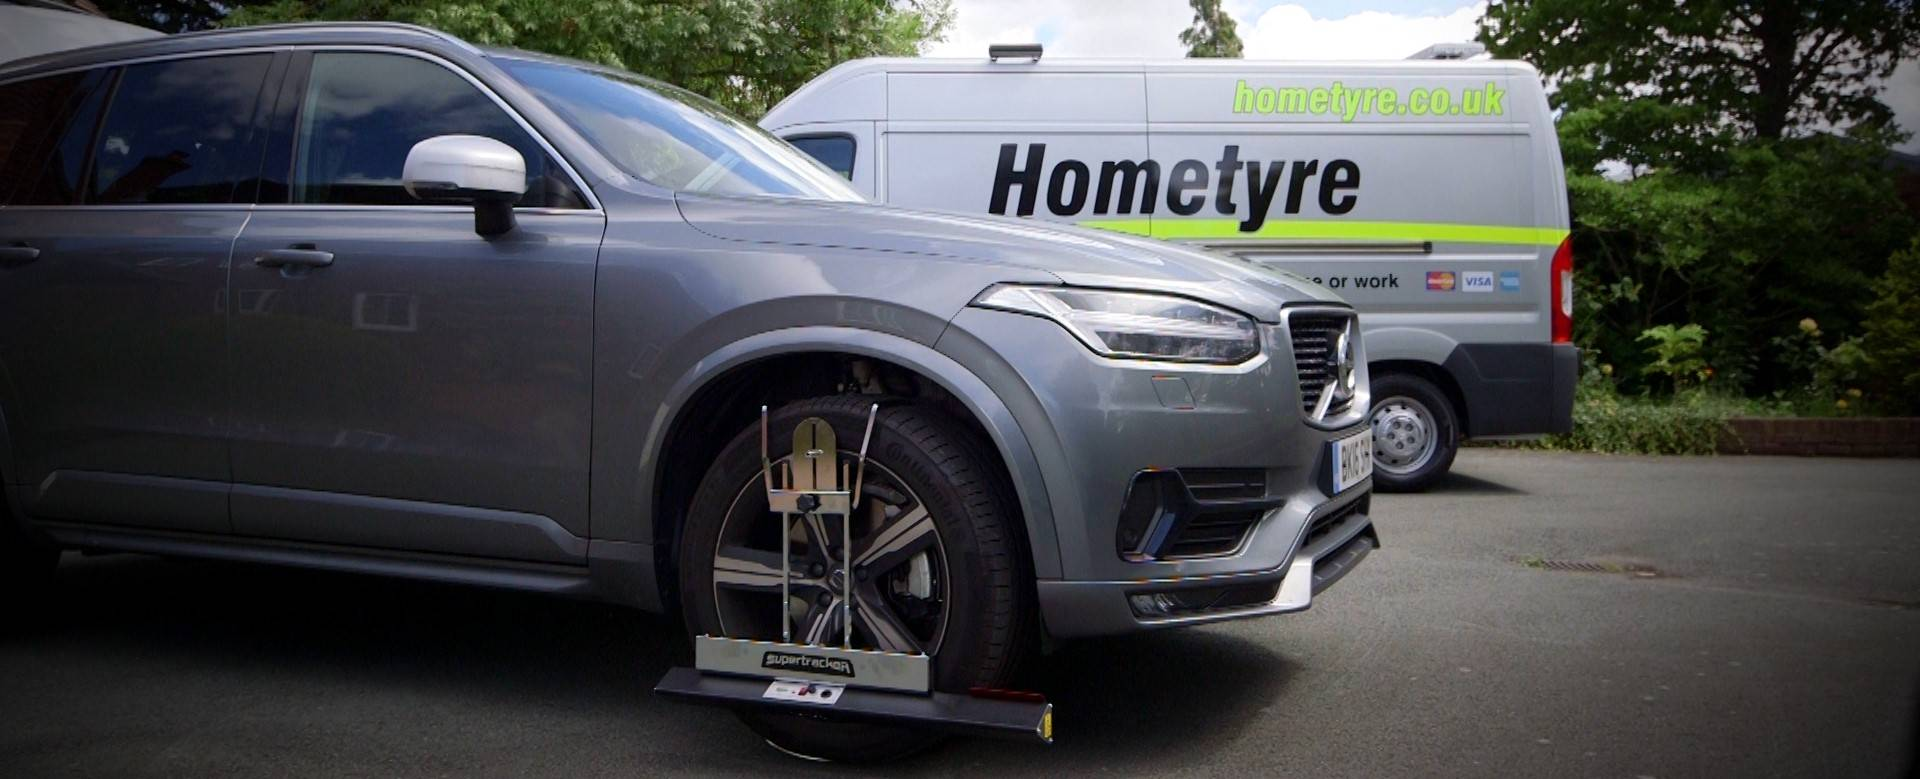 Hometyre Franchise | Mobile Tyre Fitting Business